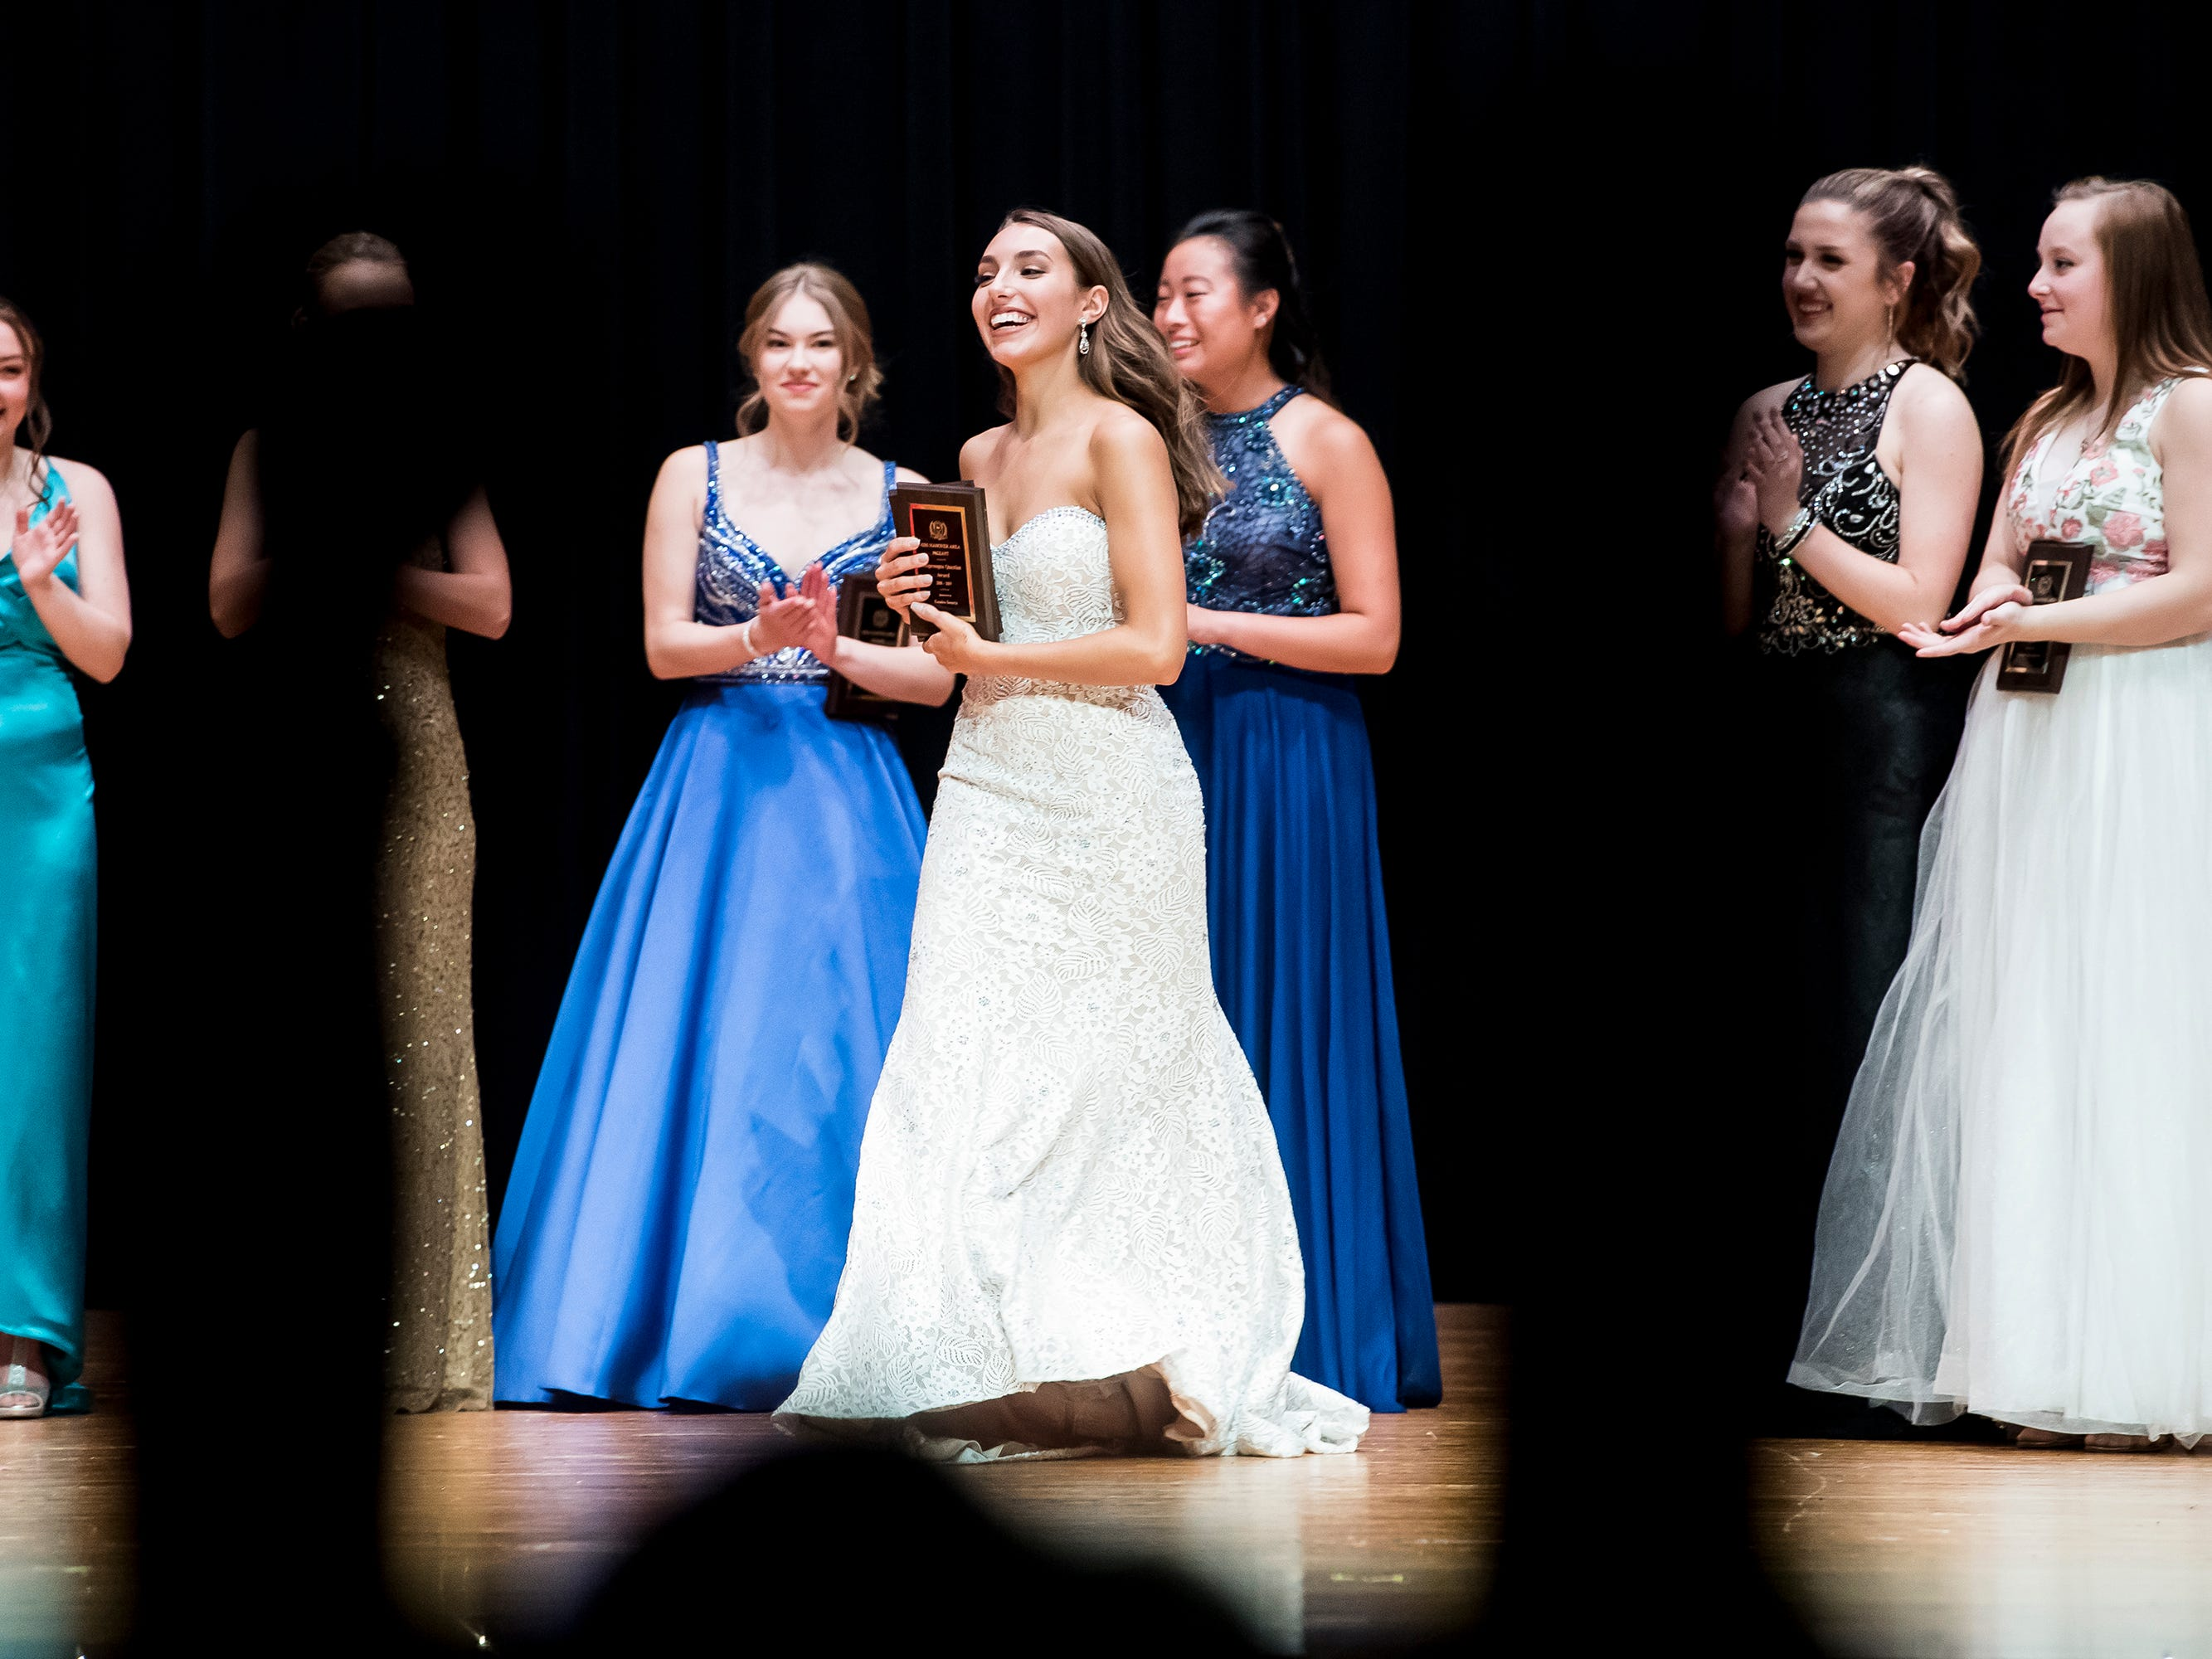 Madlyn Farley reacts after winning the evening gown competition at the 50th Miss Hanover Area pageant on Monday, October 22, 2018. Farley was crowned the 2018-2019 Miss Hanover.